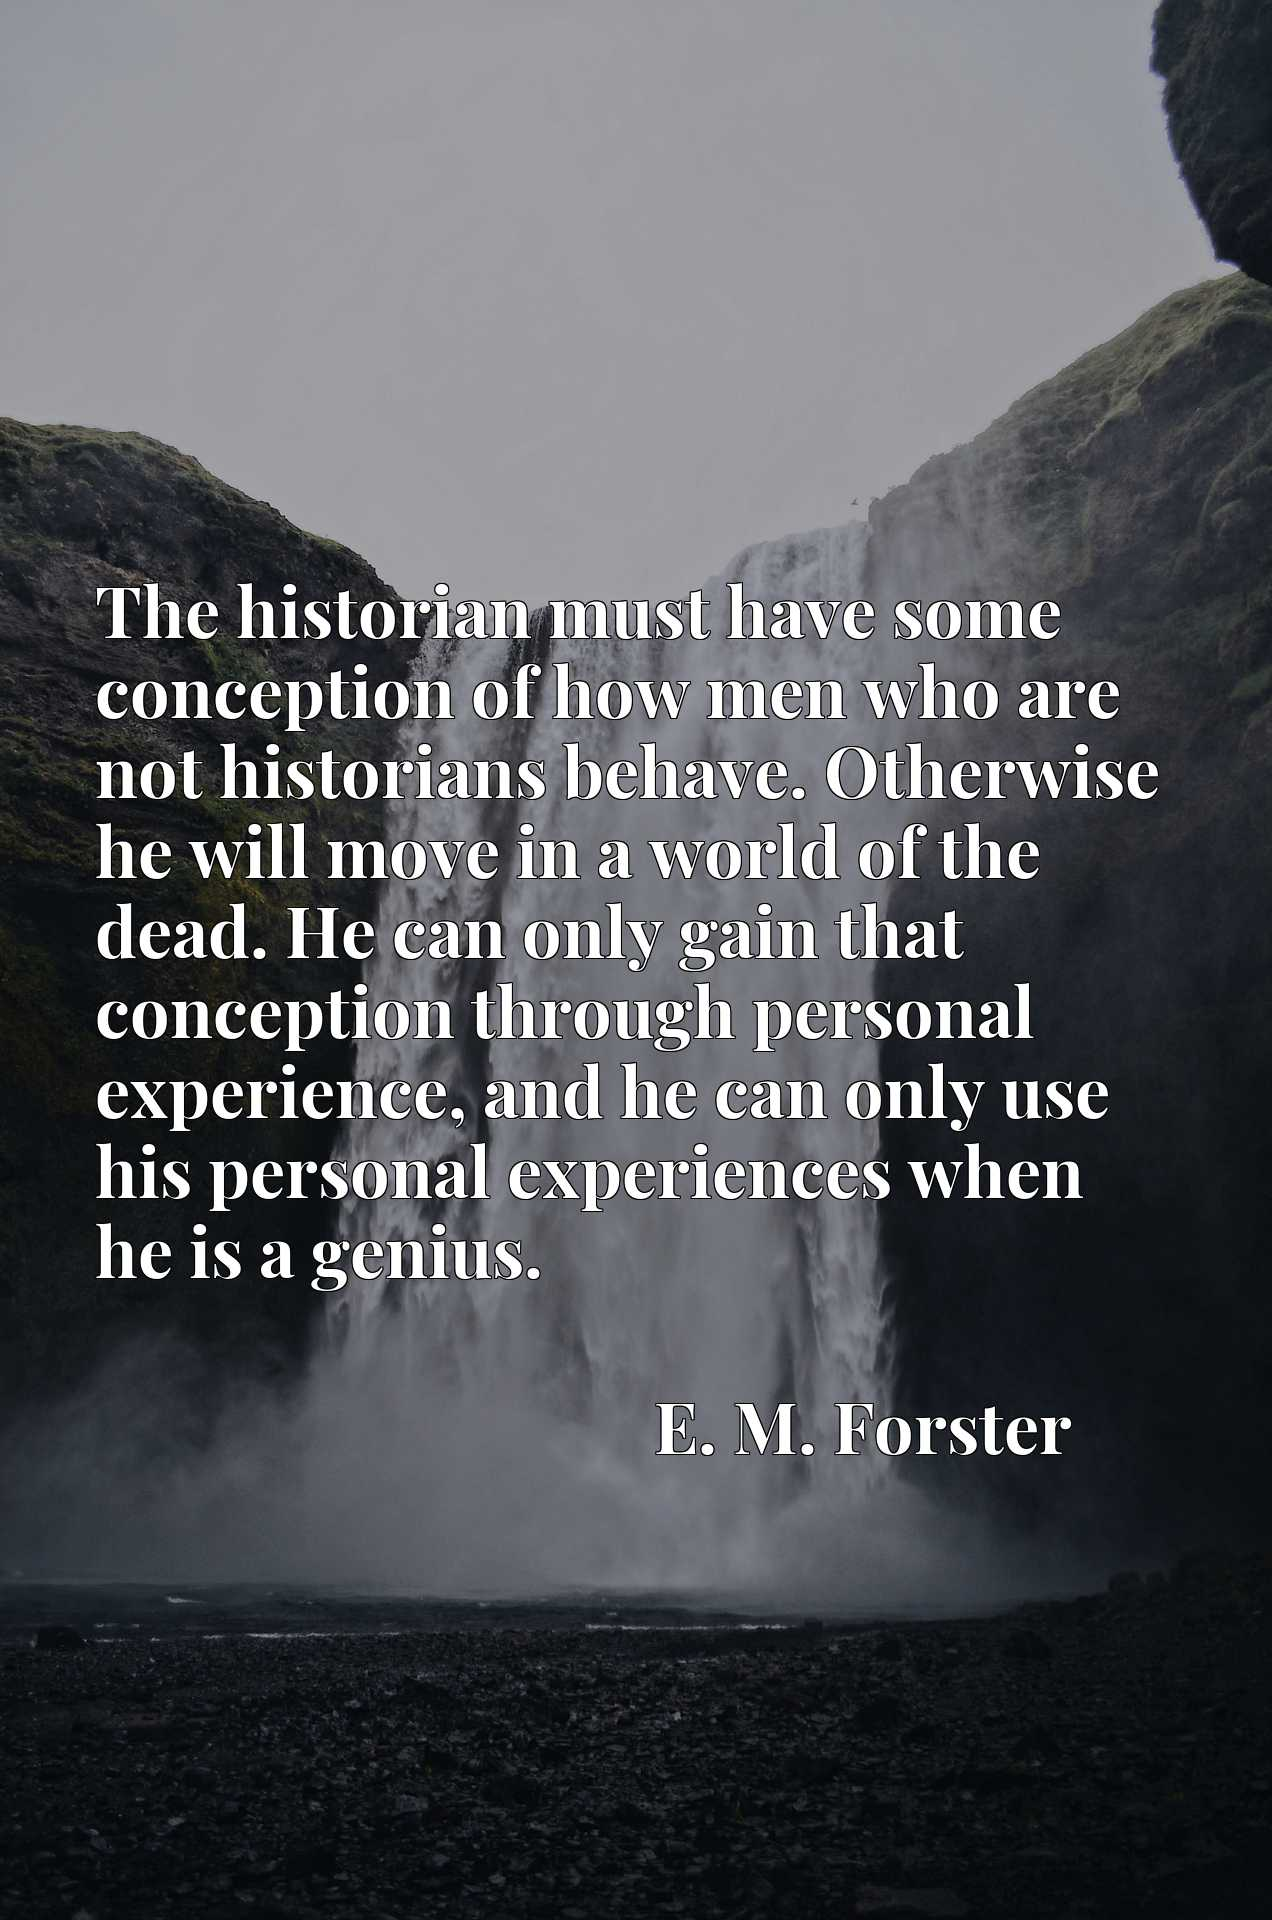 The historian must have some conception of how men who are not historians behave. Otherwise he will move in a world of the dead. He can only gain that conception through personal experience, and he can only use his personal experiences when he is a genius.